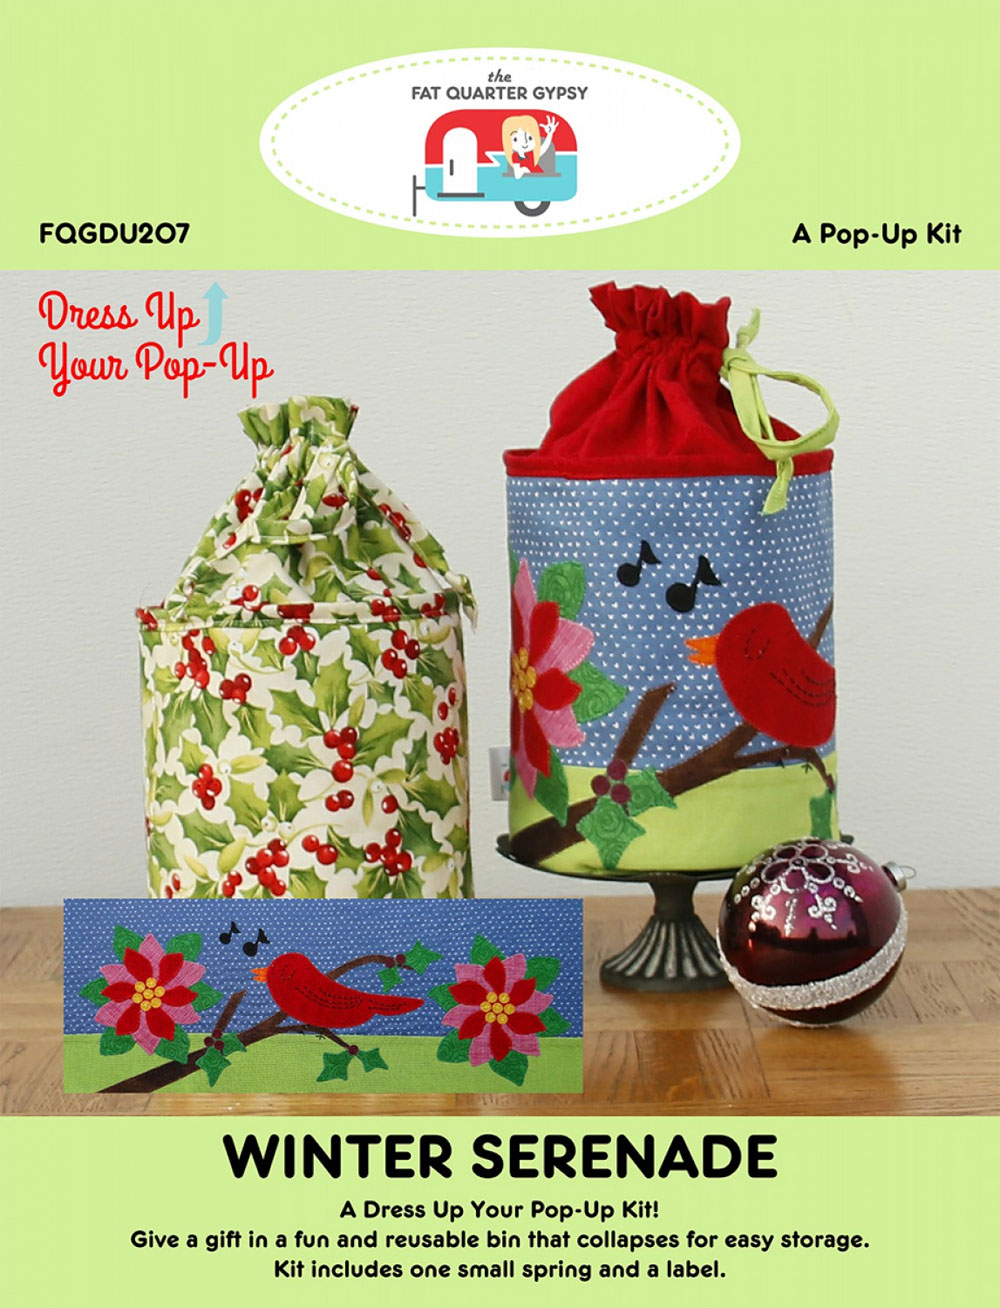 Winters-Serenade-sewing-pattern-Fat-Quarter-Gypsy-front